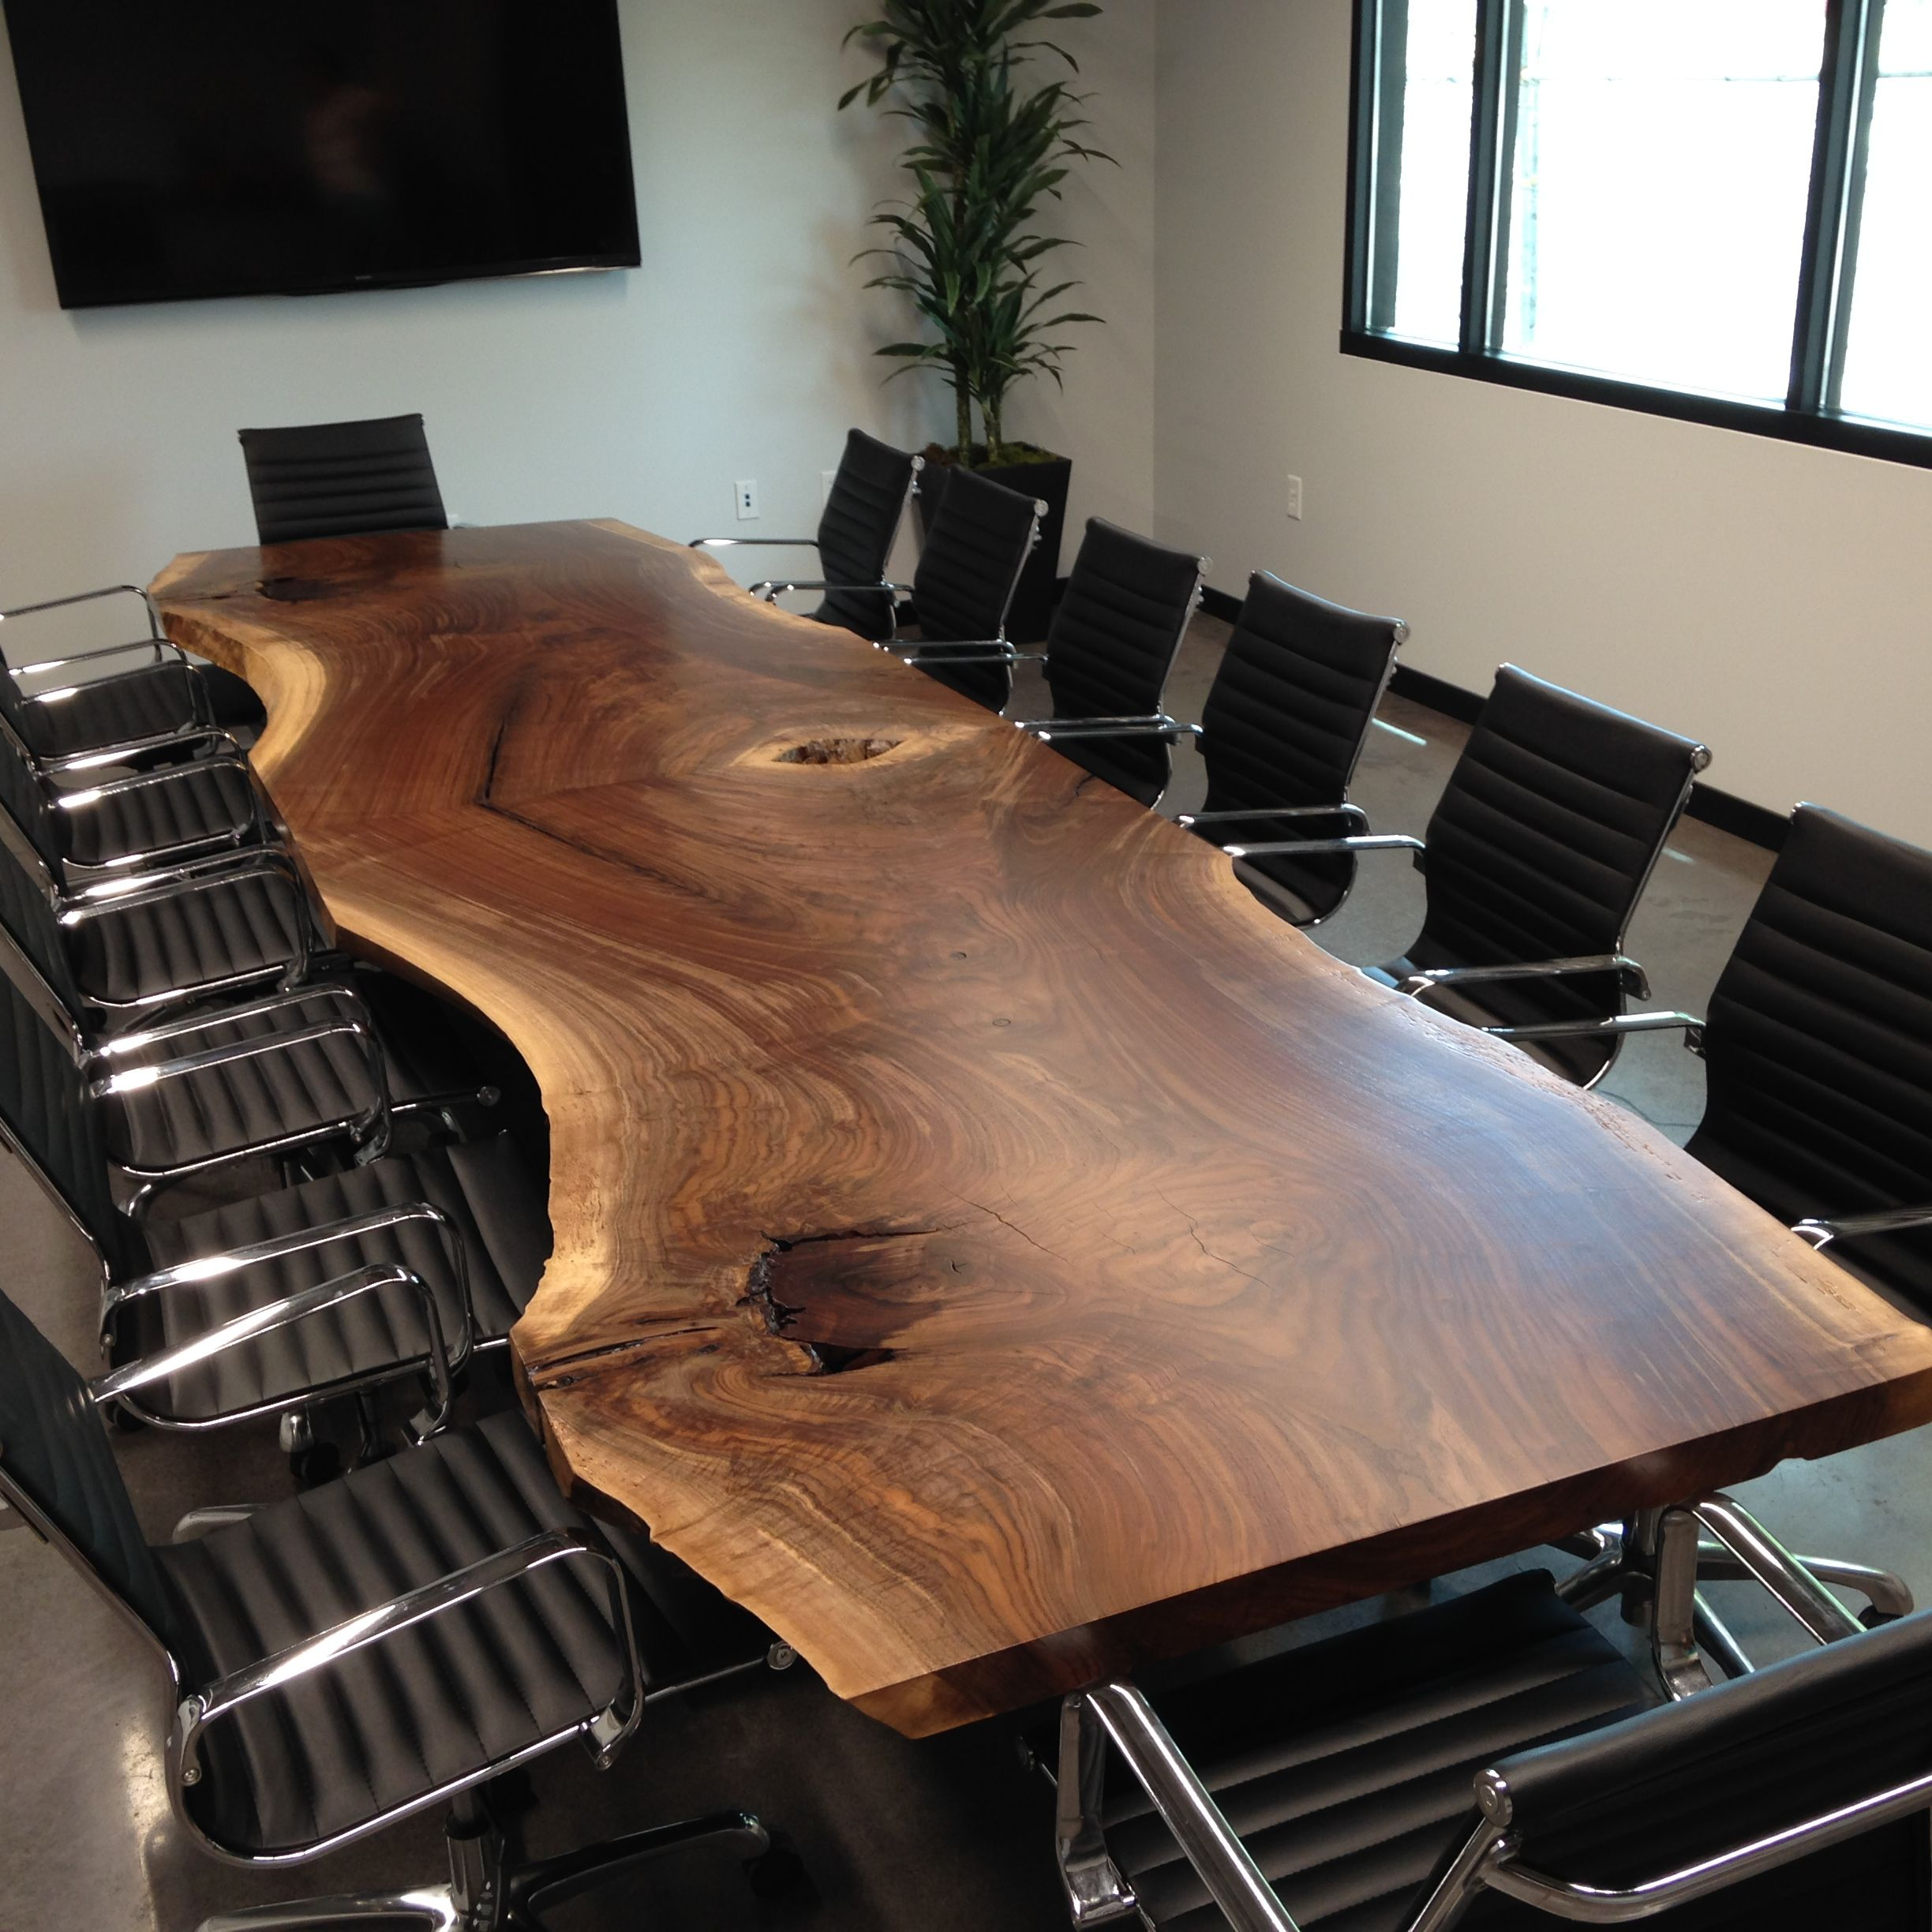 Vintage Industrial Live Edge Walnut Slab Coffee Table: Hand Made Custom Live Edge Black Walnut Conference Table